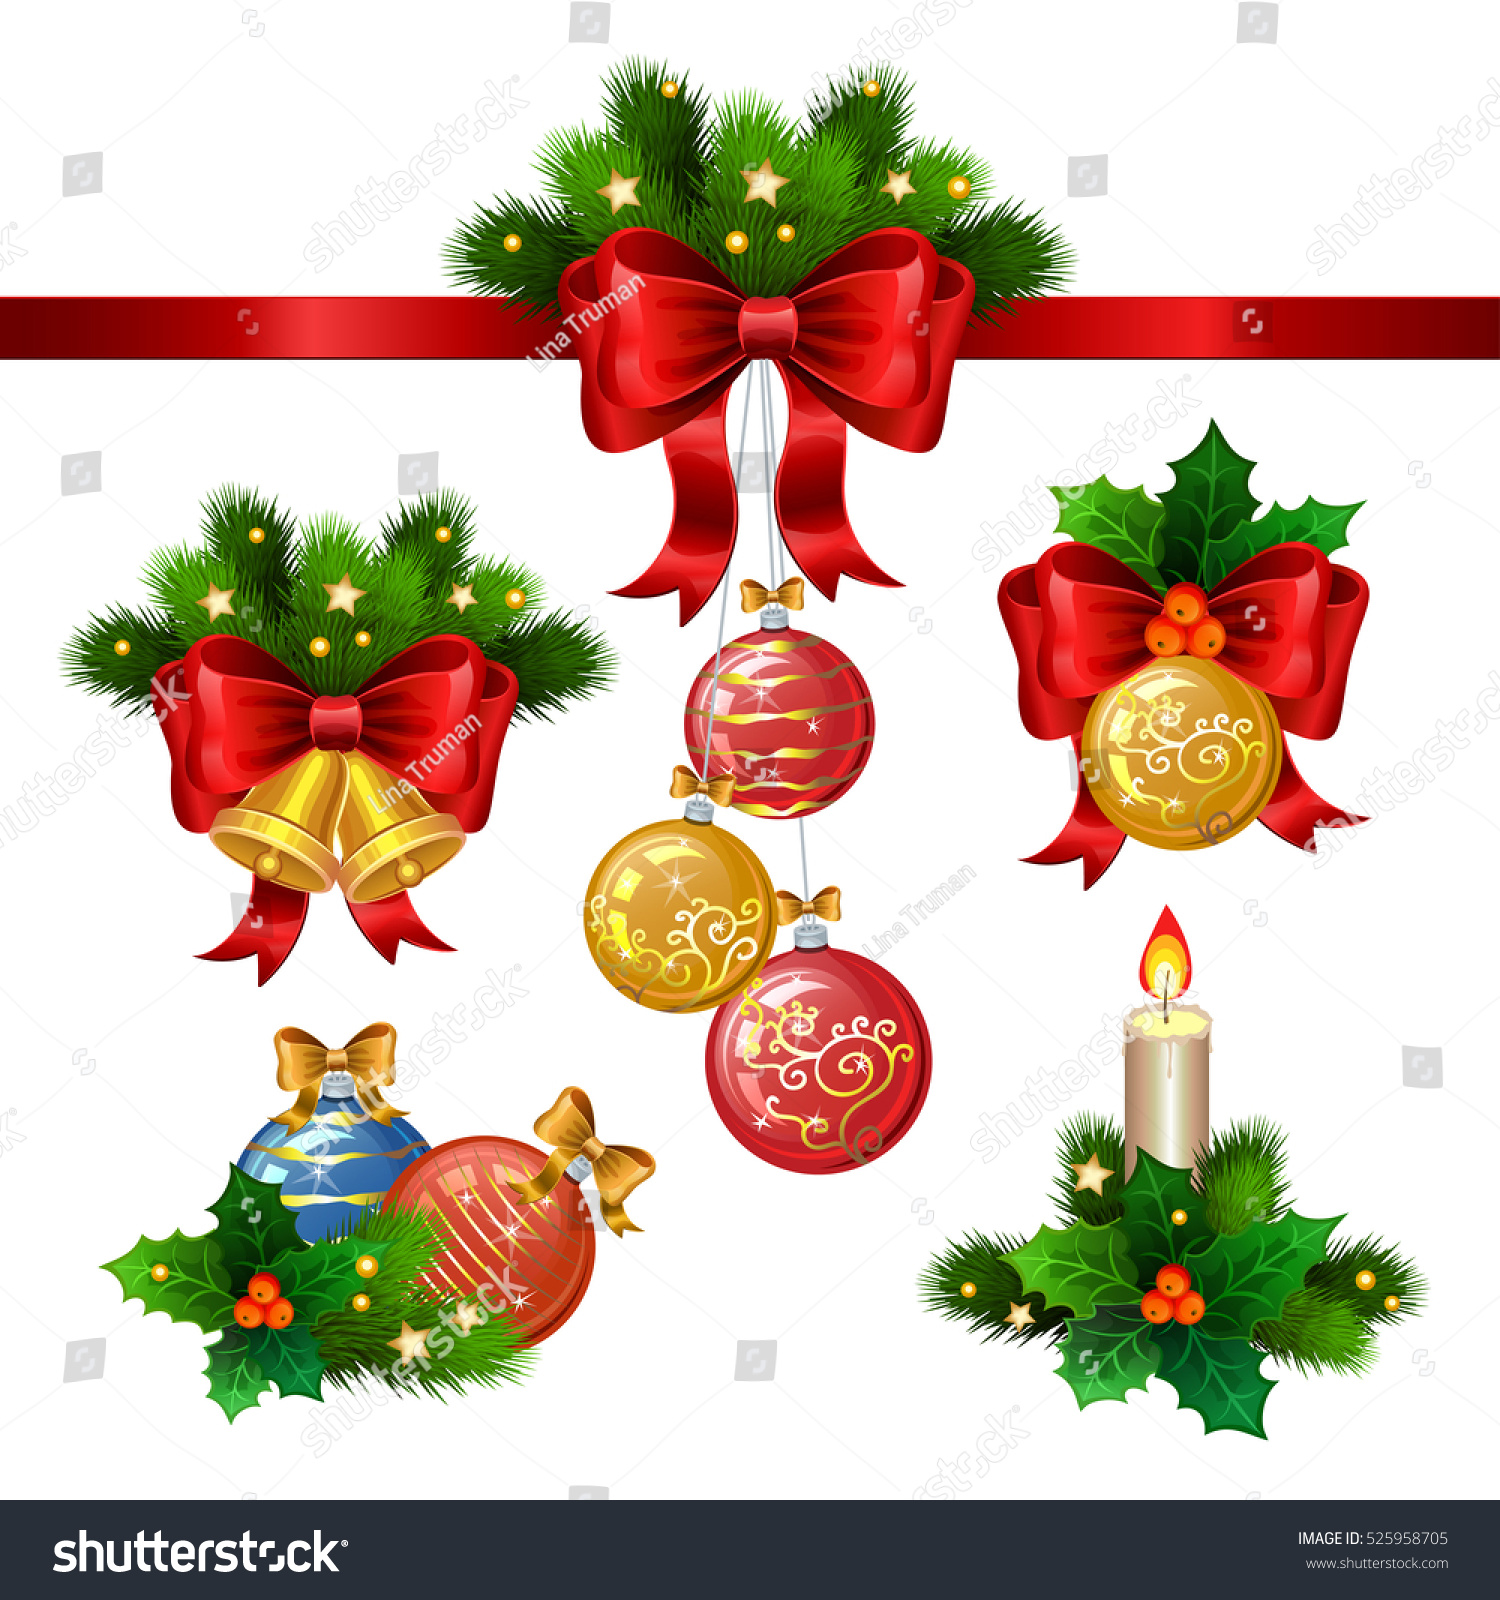 decor see submissions lights calls your we call house christmas holiday want for decorations submit to